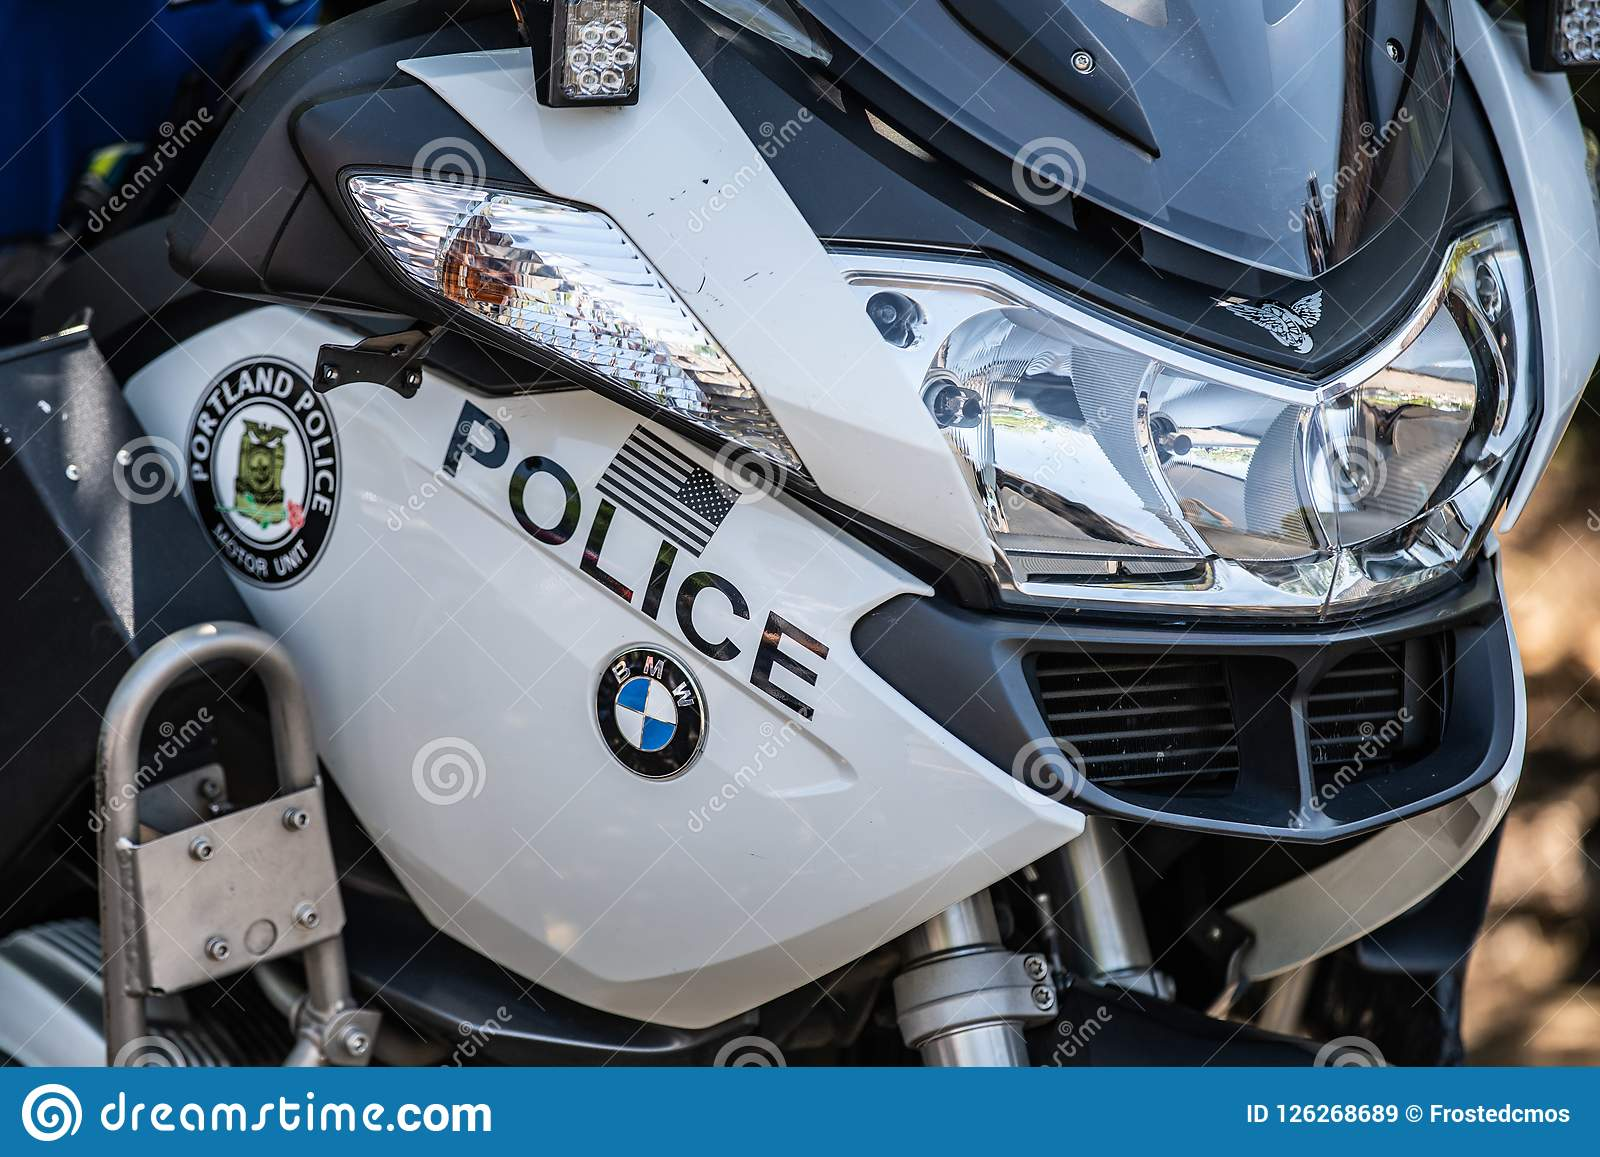 hight resolution of portland or usa august 18 2018 portland police bmw motorcycle at multnomah days event